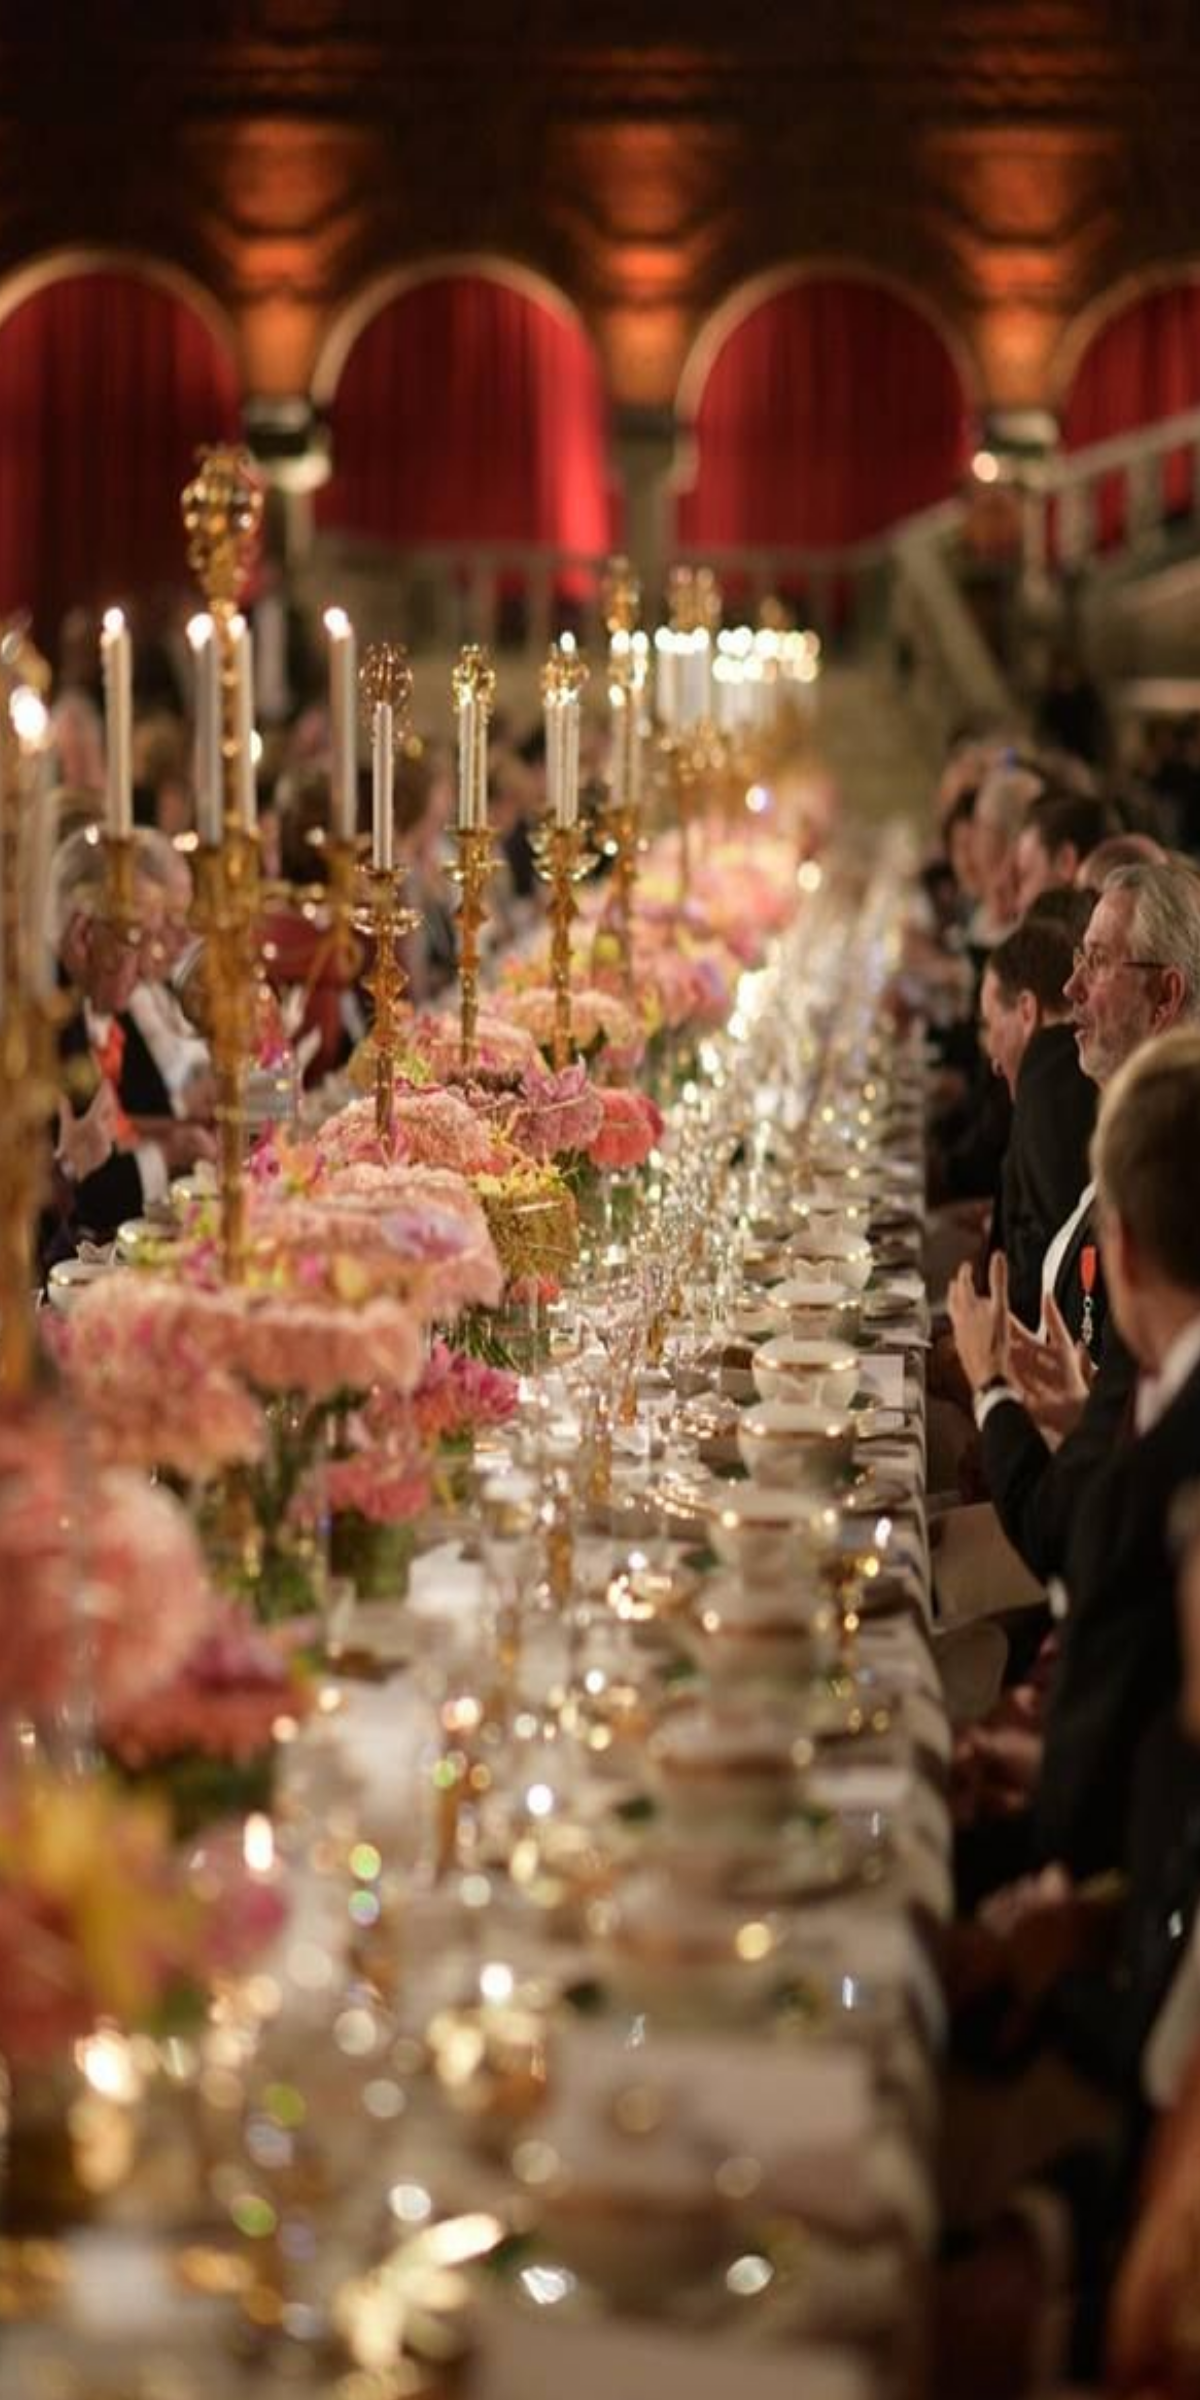 pinterest wedding table decorations candles%0A Black Tie elegance